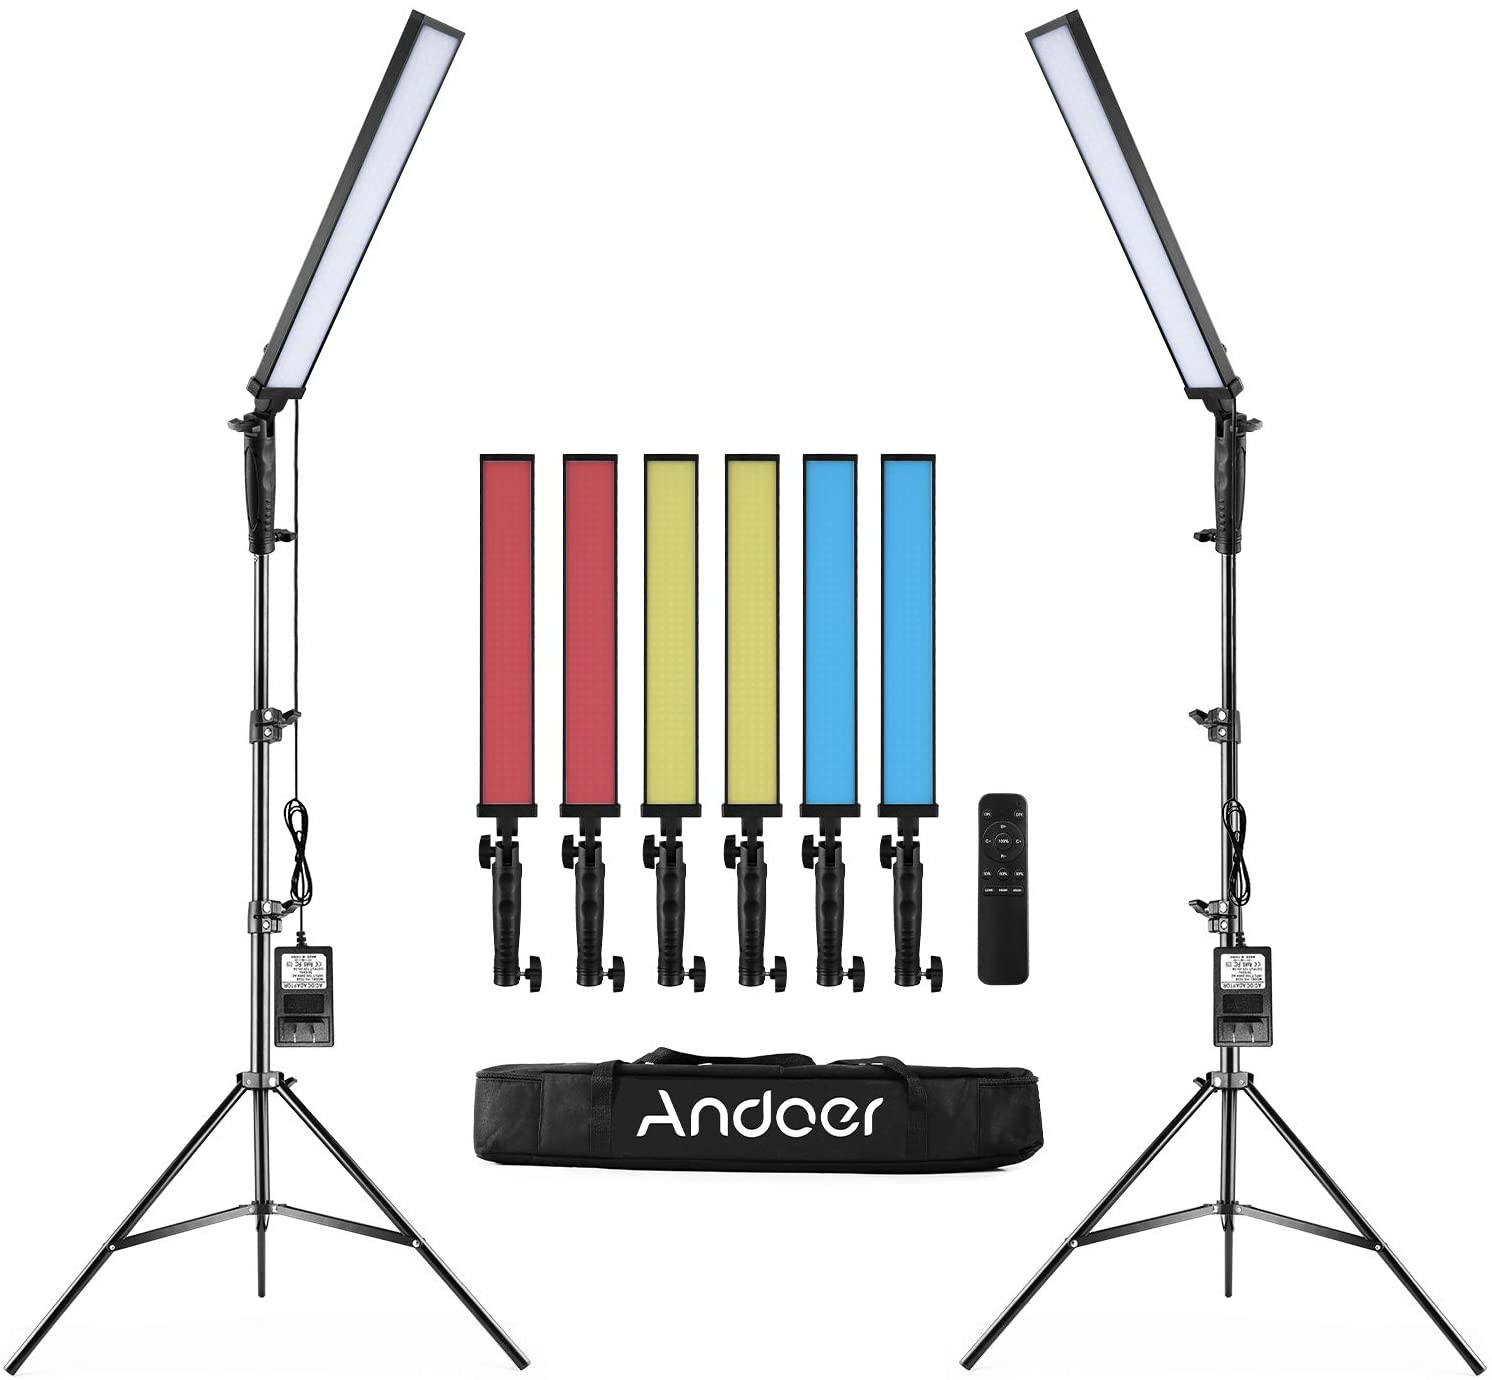 Andoer BH-20H Handheld Photography LED Light Kit with 2 LED Light /1 Remote Control/2 2M Light Stand/1 Carry Bag/6 Color Filters for Video Portraits Wedding Advertisement Photography